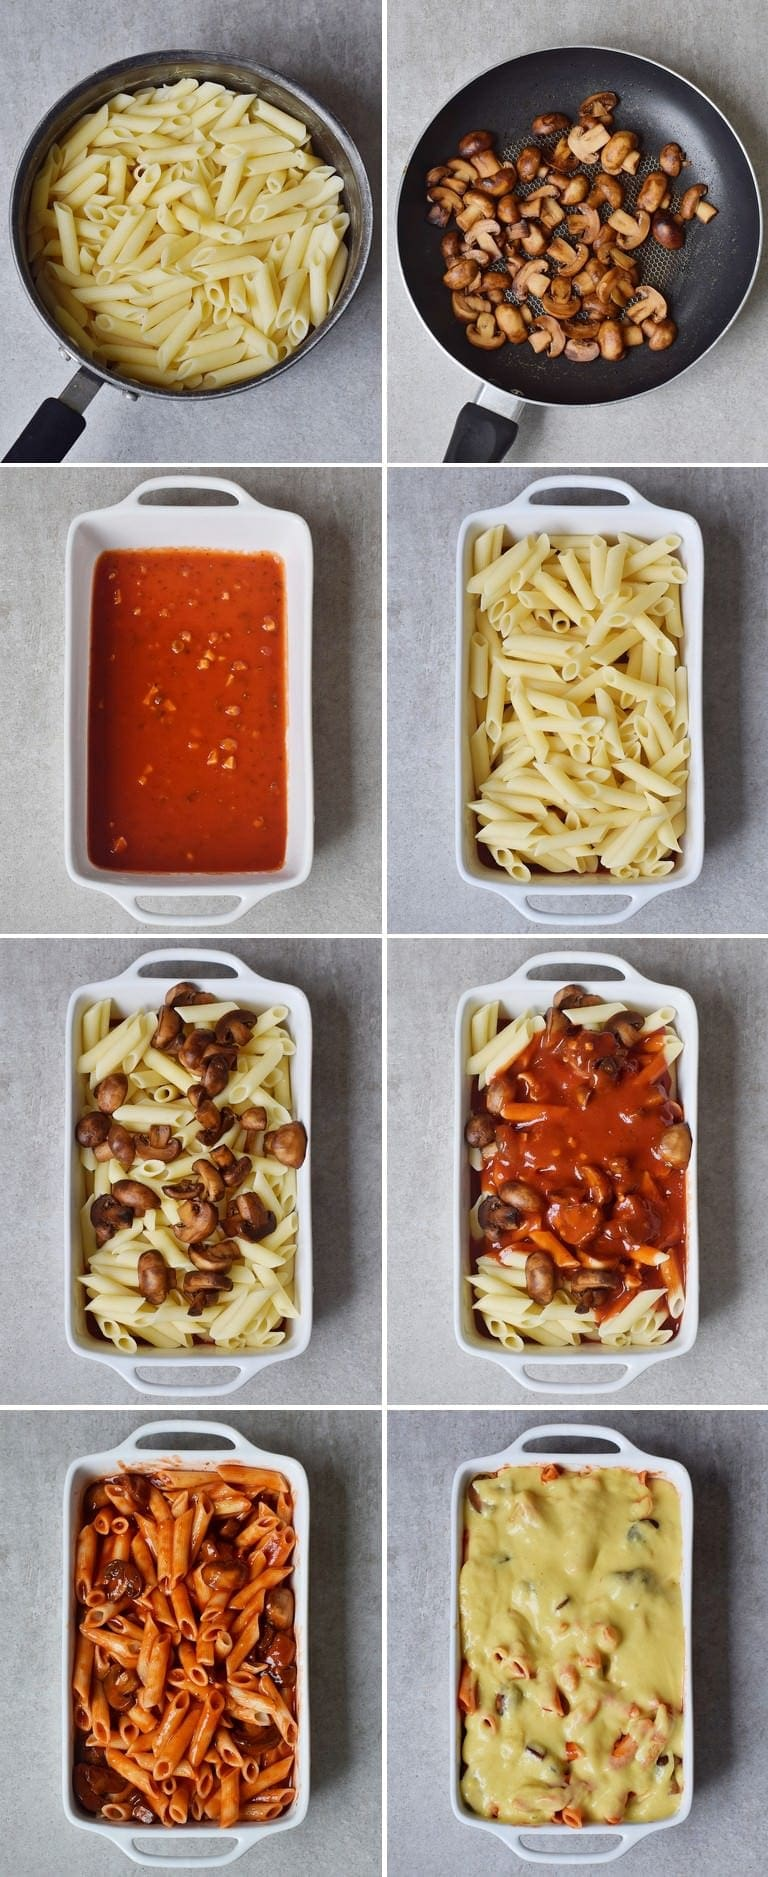 How to make easy vegan baked ziti